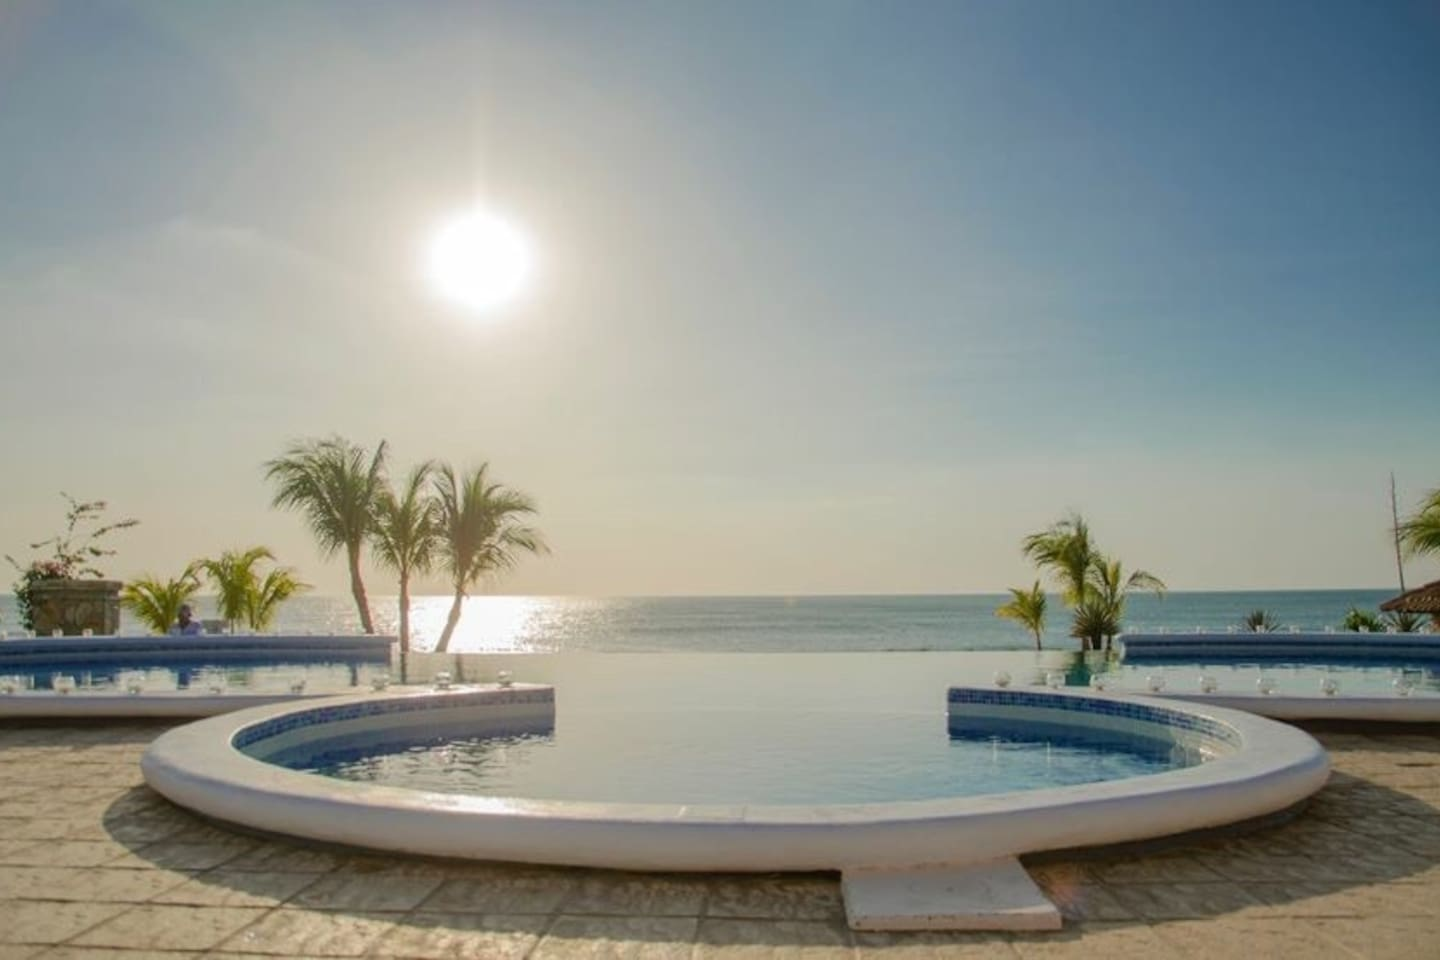 Shared infinity pool. Located outside the Sea Salt Restaurant. 2 minute walk from Casa Girasol.